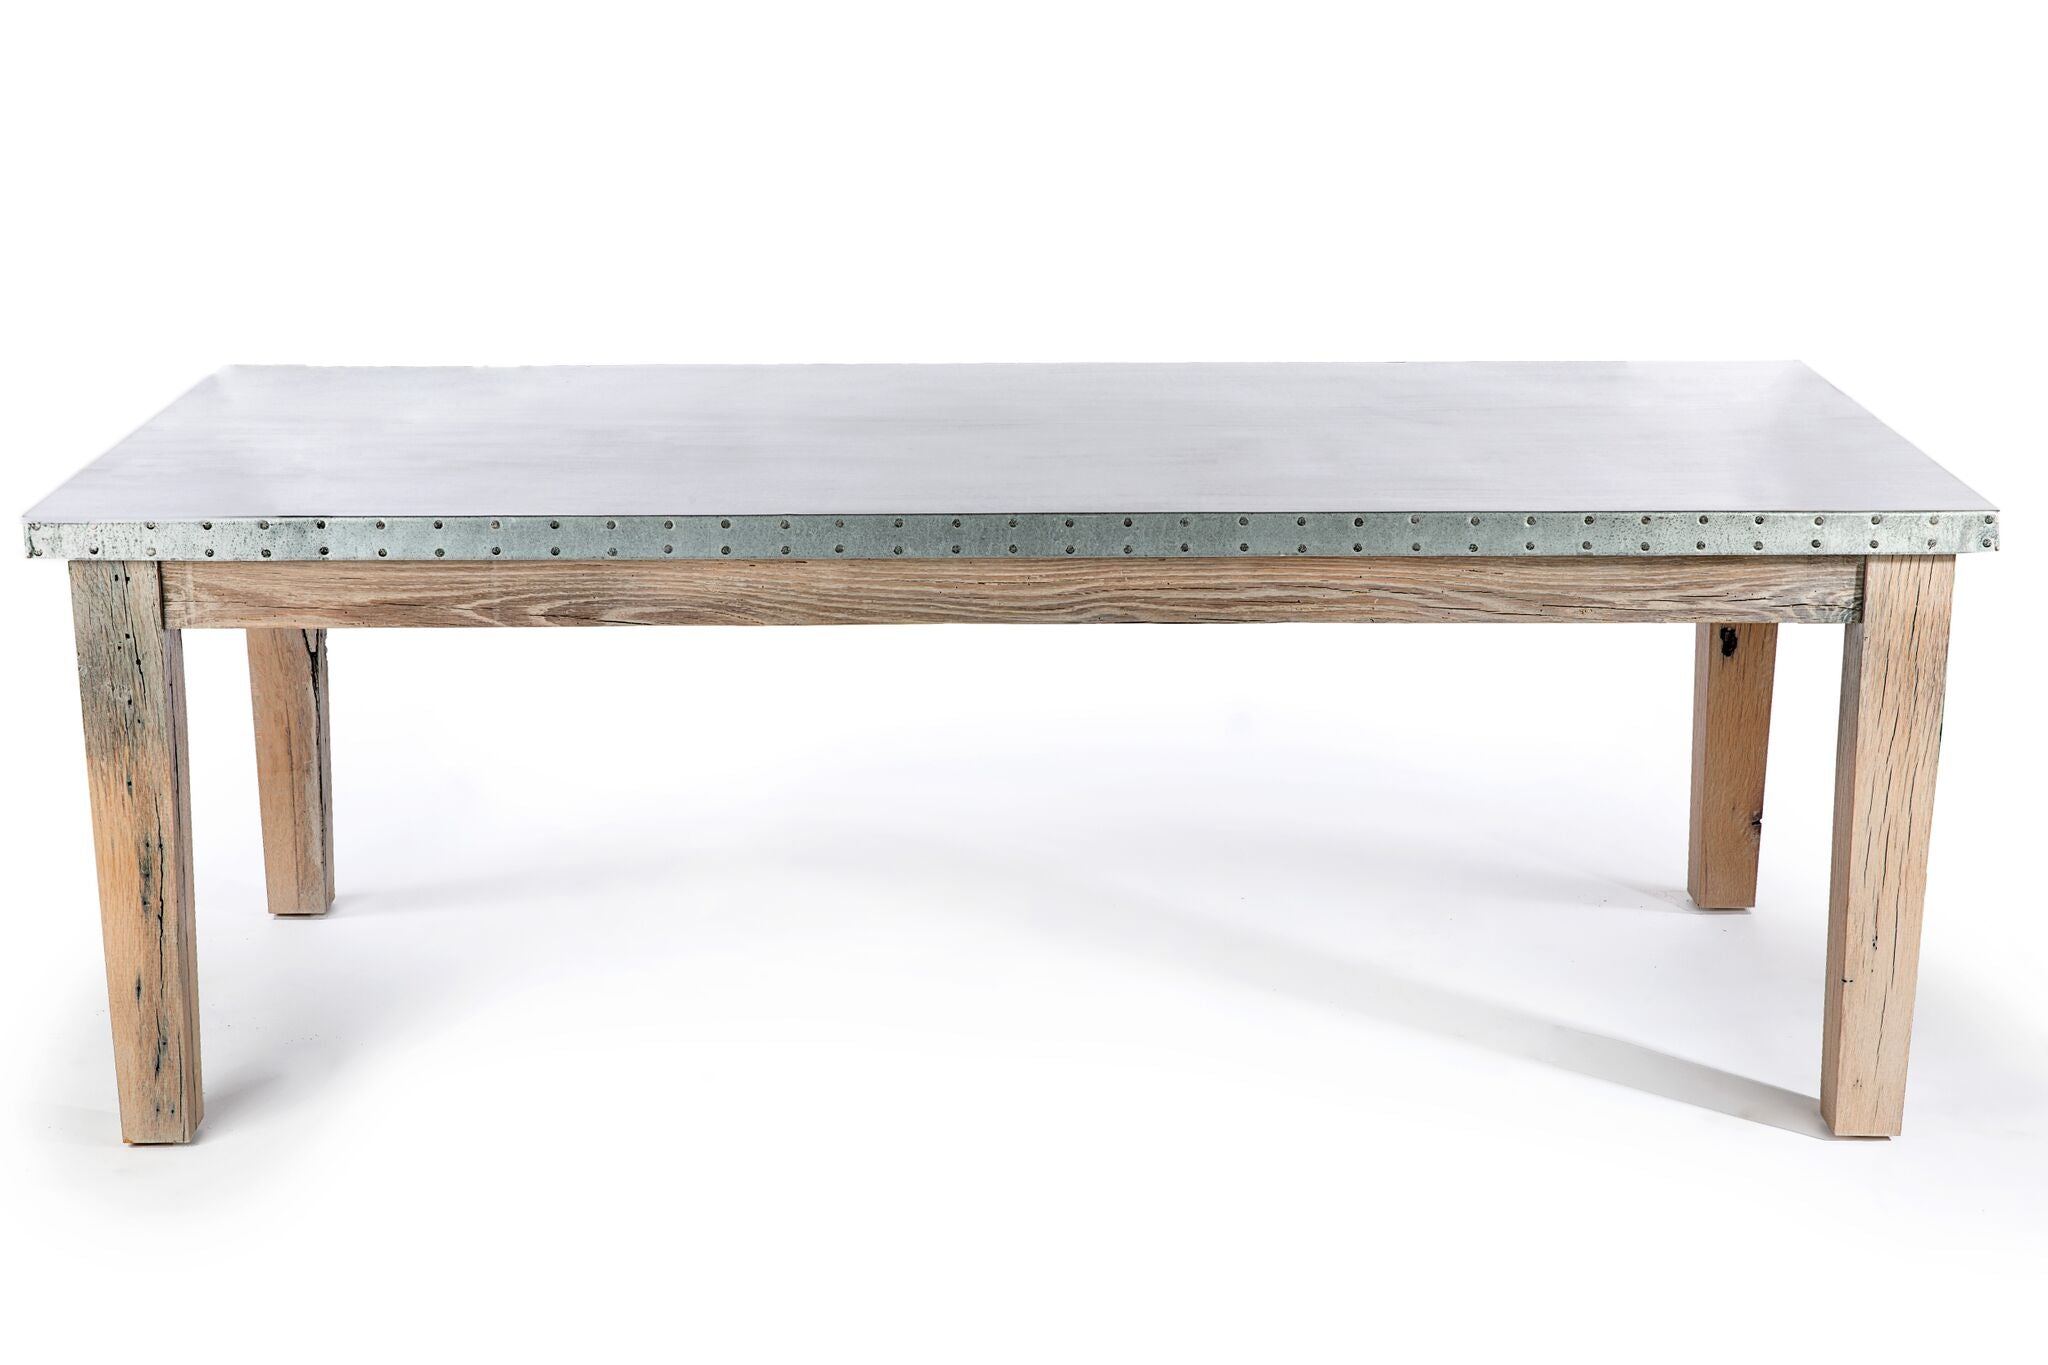 "Zinc Rectangular Table | Cambridge Table | CLASSIC | Natural Ash | CUSTOM SIZE60""L 37""W 30""H 